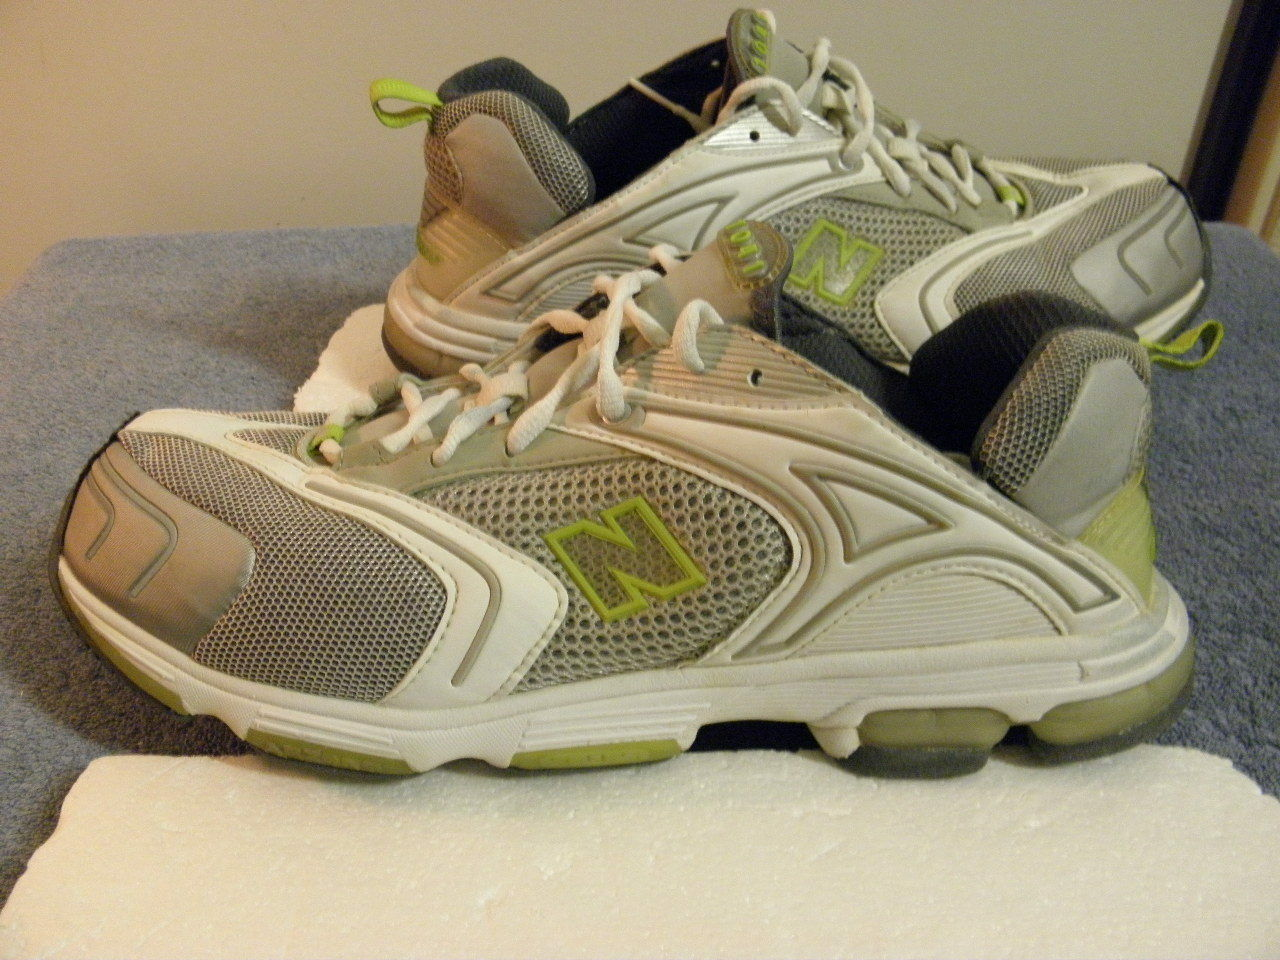 New Balance 1041 vintage running shoes size 13 womens 11.5 mens EUC MSRP